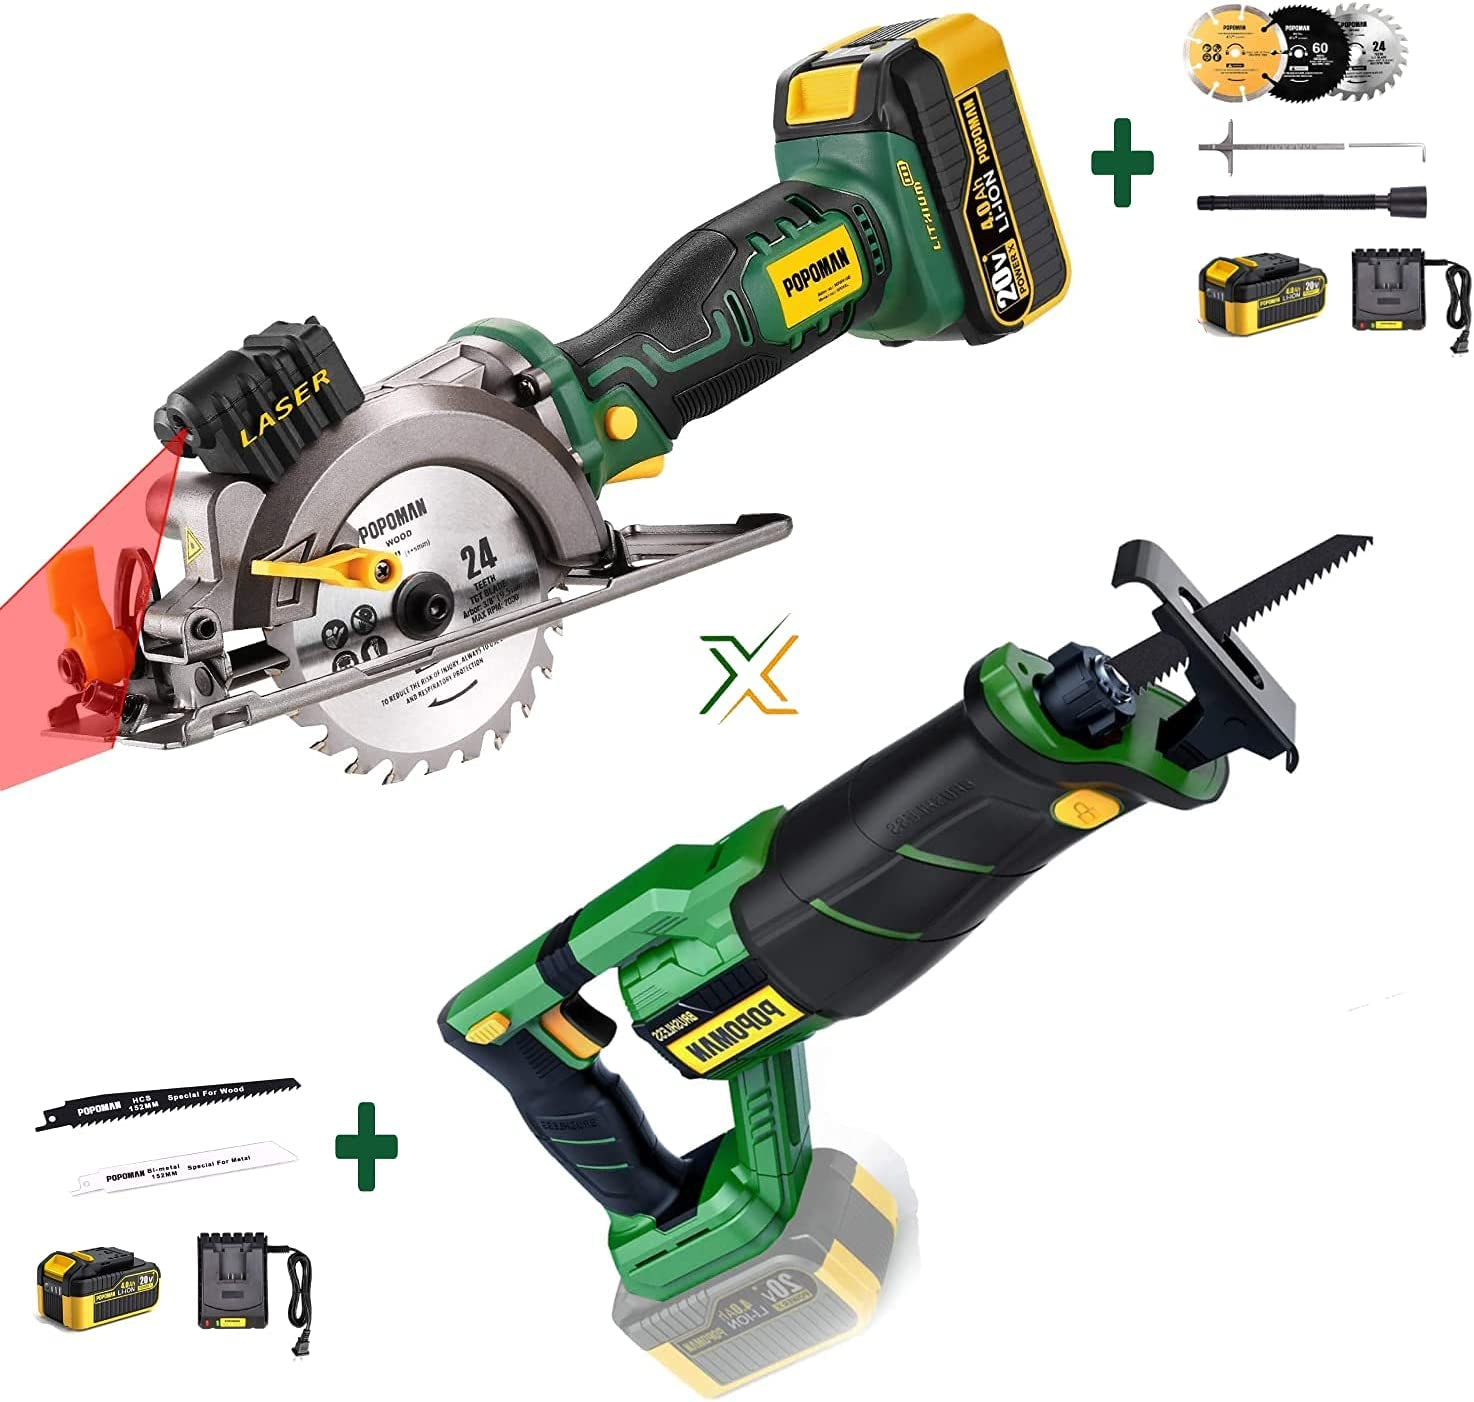 POPOMAN MTW510B Cordless OFFicial site Circular Saw 4.0Ah Cha Sale Special Price BatteryFast 20V